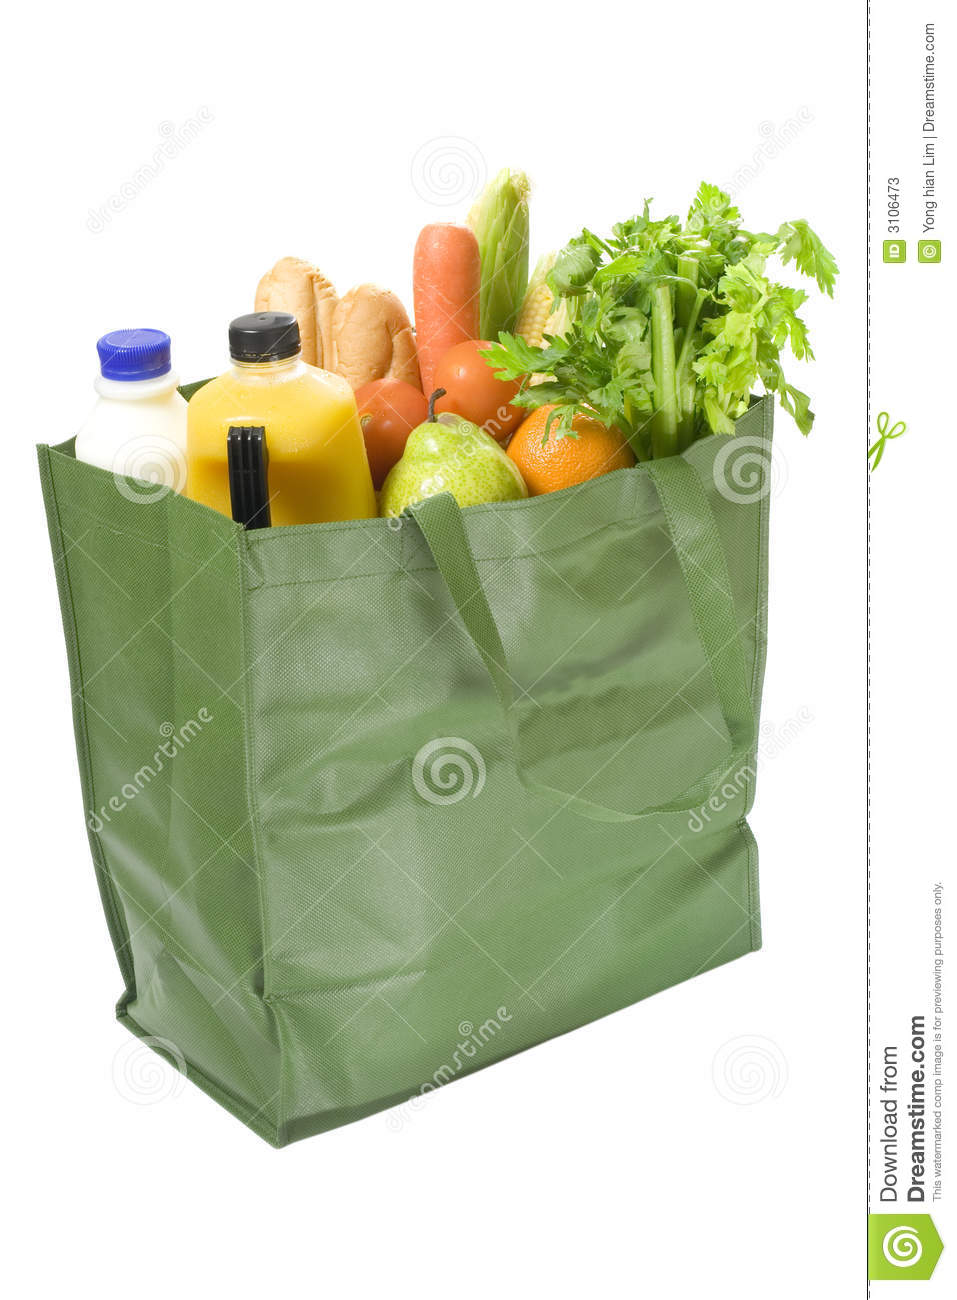 Reusable bag full of groceries